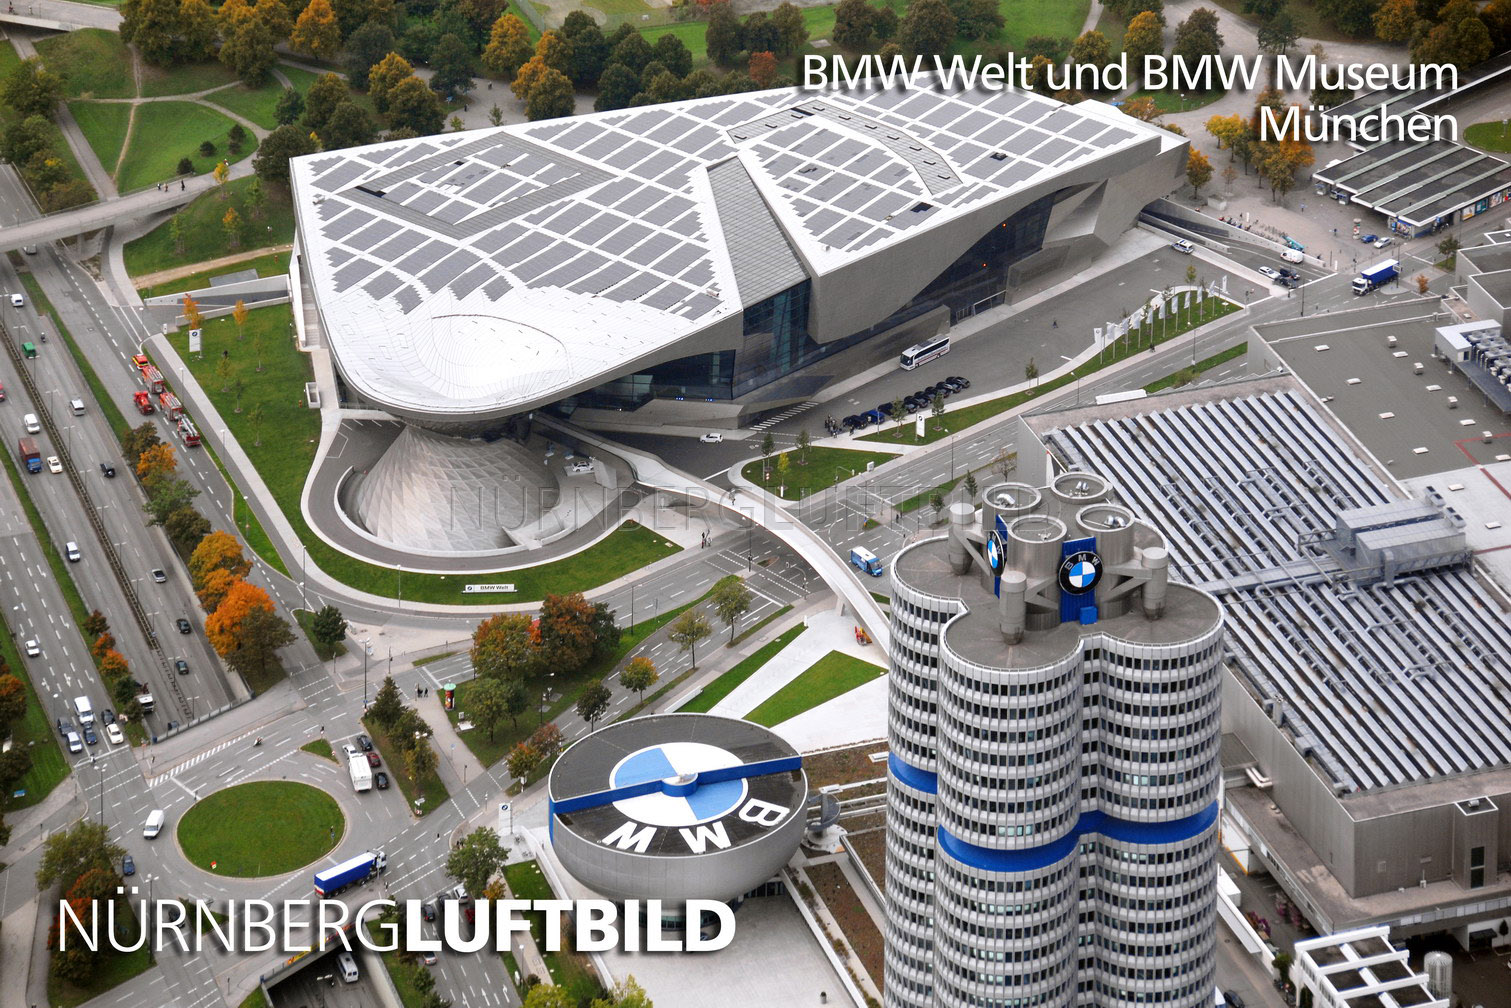 bmw museum und bmw welt m nchen luftaufnahme. Black Bedroom Furniture Sets. Home Design Ideas